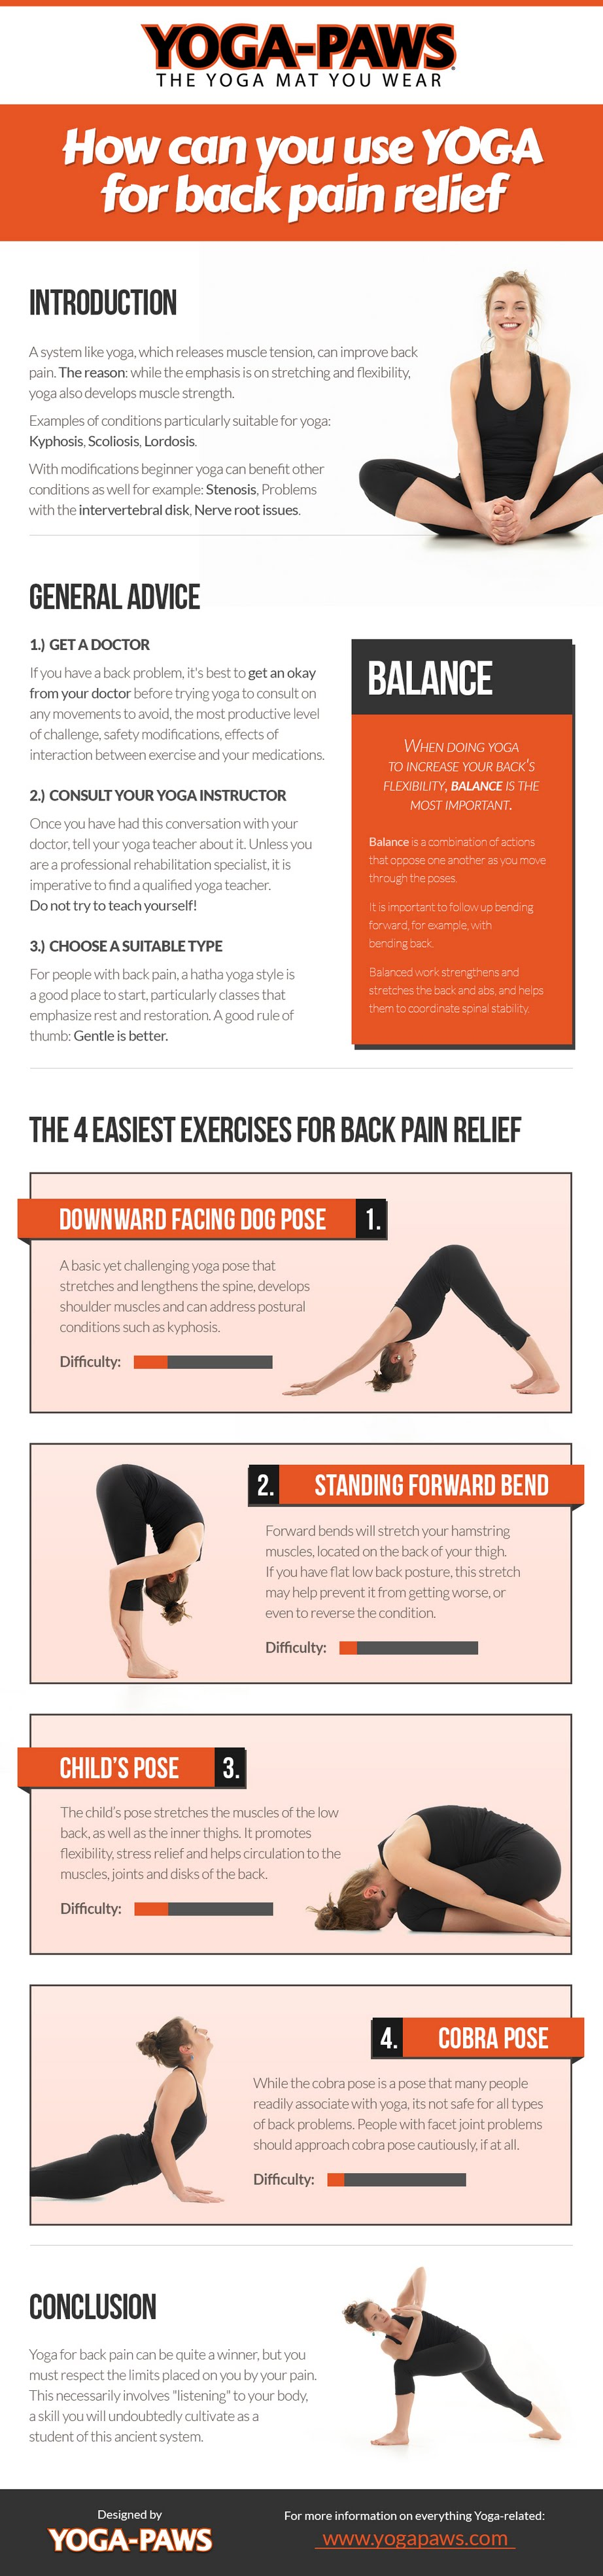 How You Can Use Yoga For Back Pain Relief Health Infographics - Apps ...